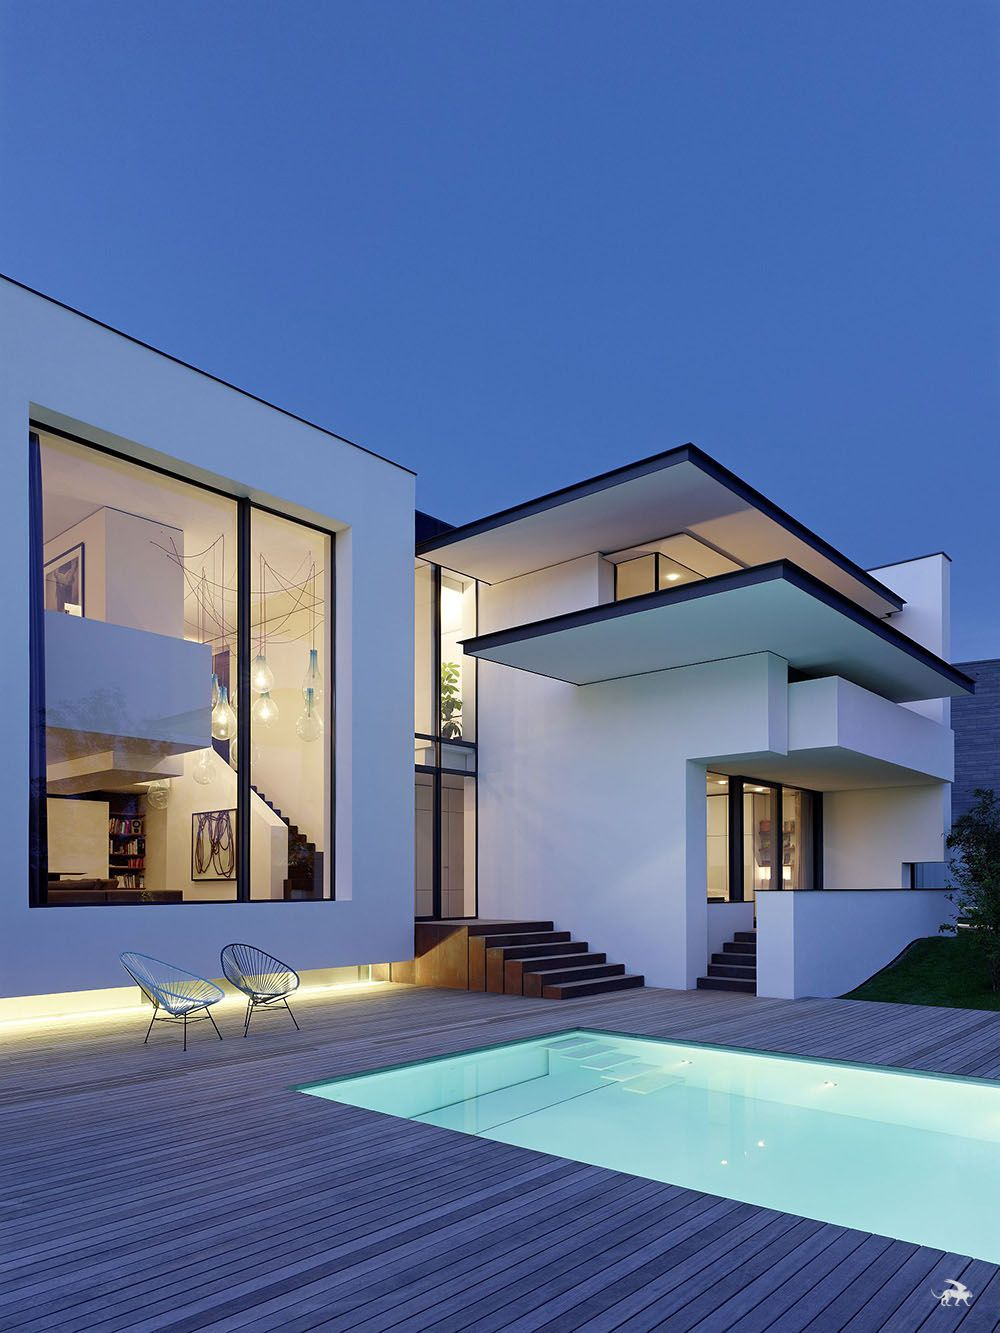 Panoramic Views Privacy And Art Over Stuttgart The Vista House Freshome Com Vista House Architecture Architecture House